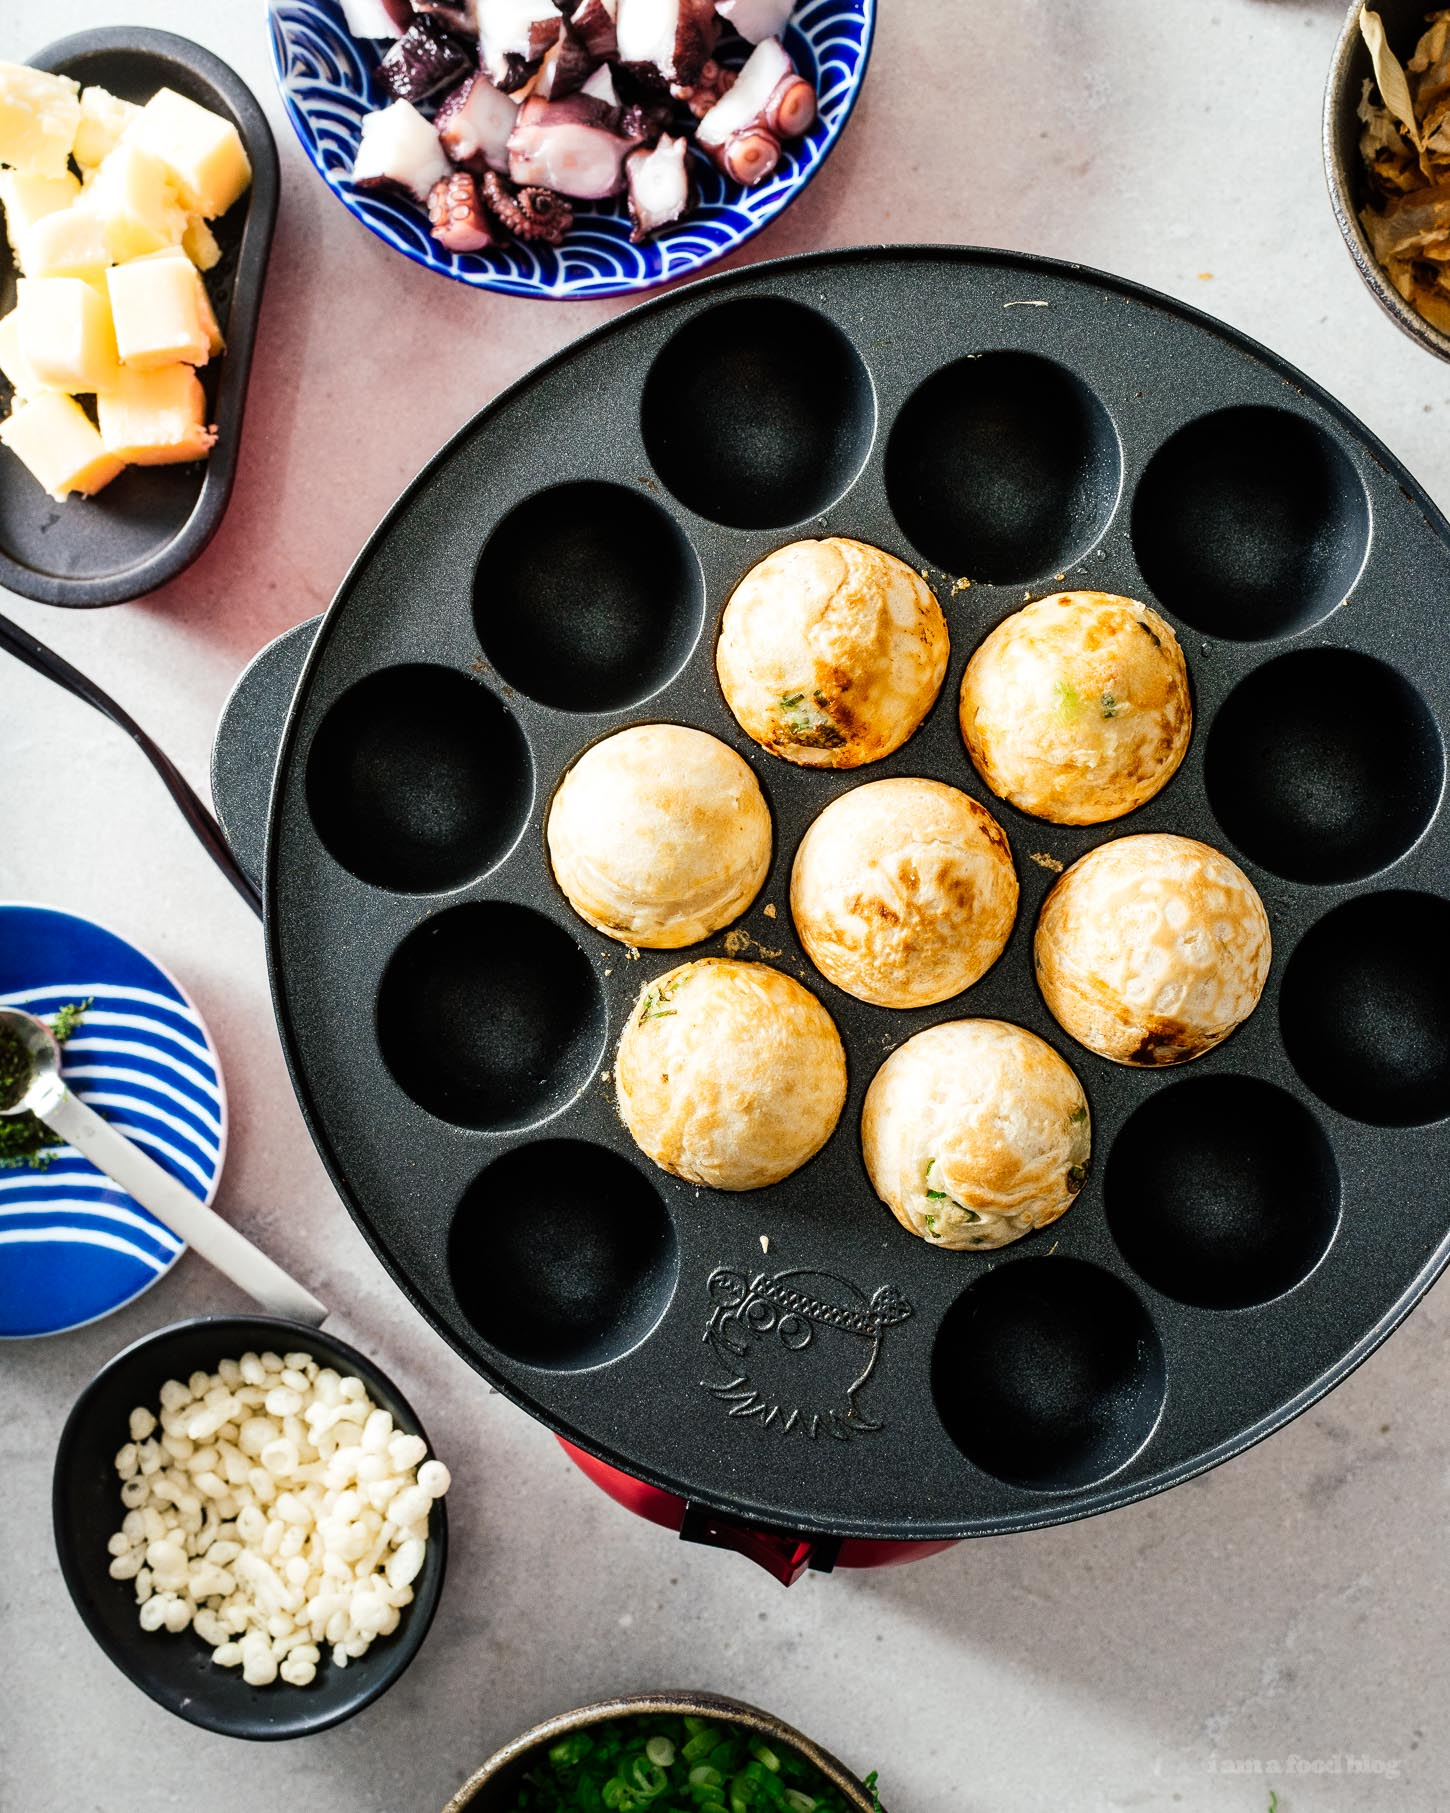 Throw a Japanese takoyaki dinner party with this takoyaki, the ultimate Japanese street food at the table with friends and family. Interactive, fun, and delicious! Authentic takoyaki recipe #japanesefood #recipes #takoyaki #streetfood #japan #tokyo #howto